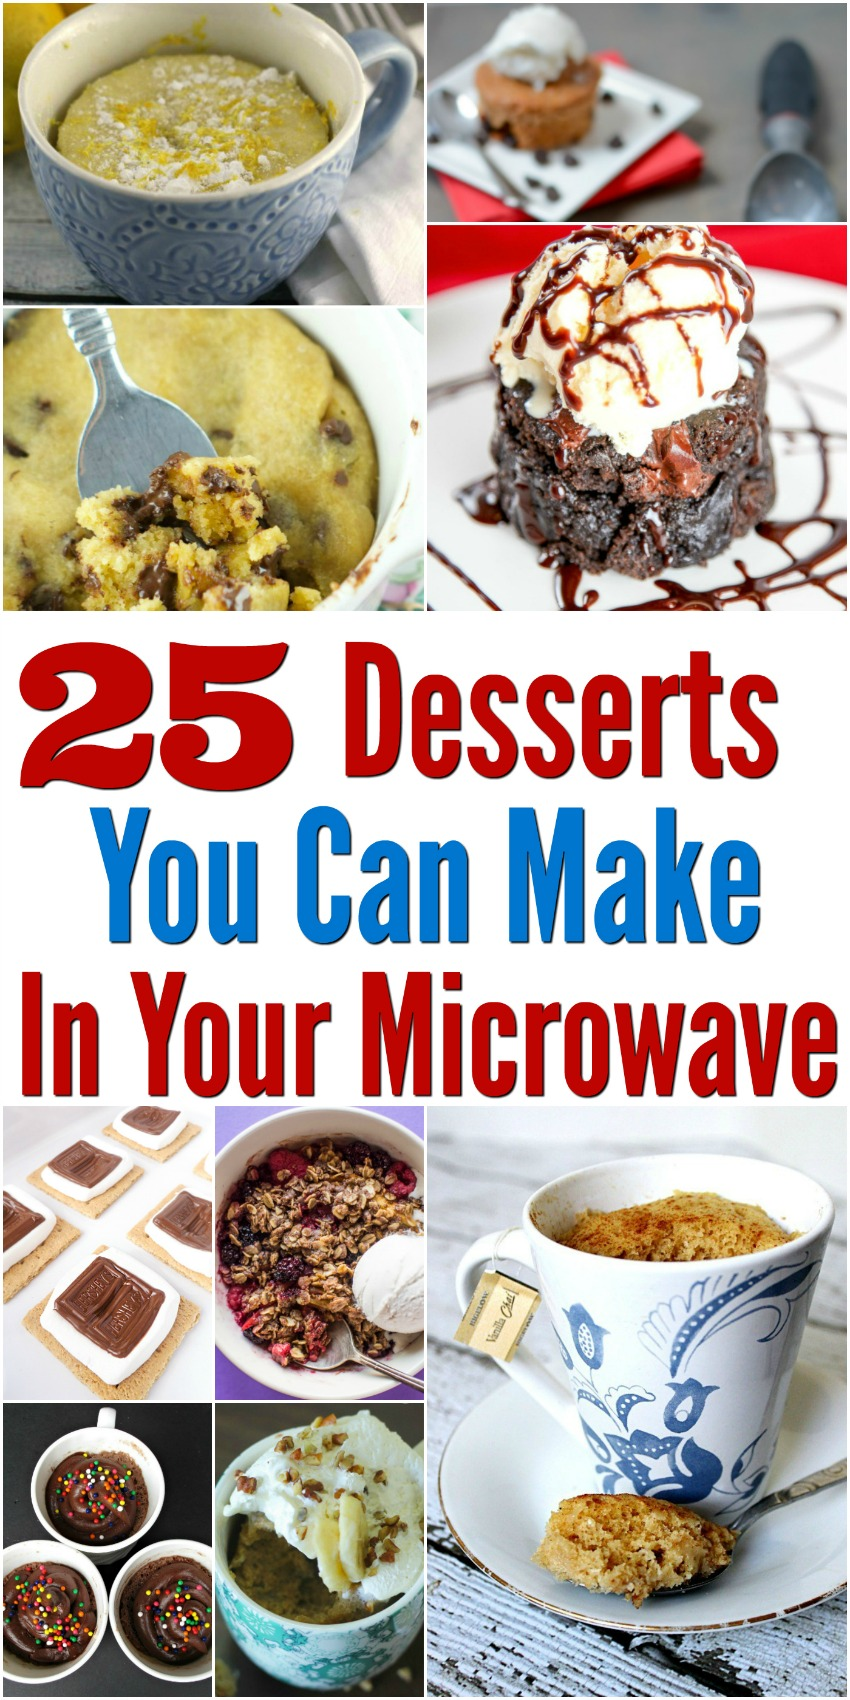 Looking for some delicious desserts you can make in under 10 minutes Check out our list of 25 Desserts You Can Make In Your Microwave here!